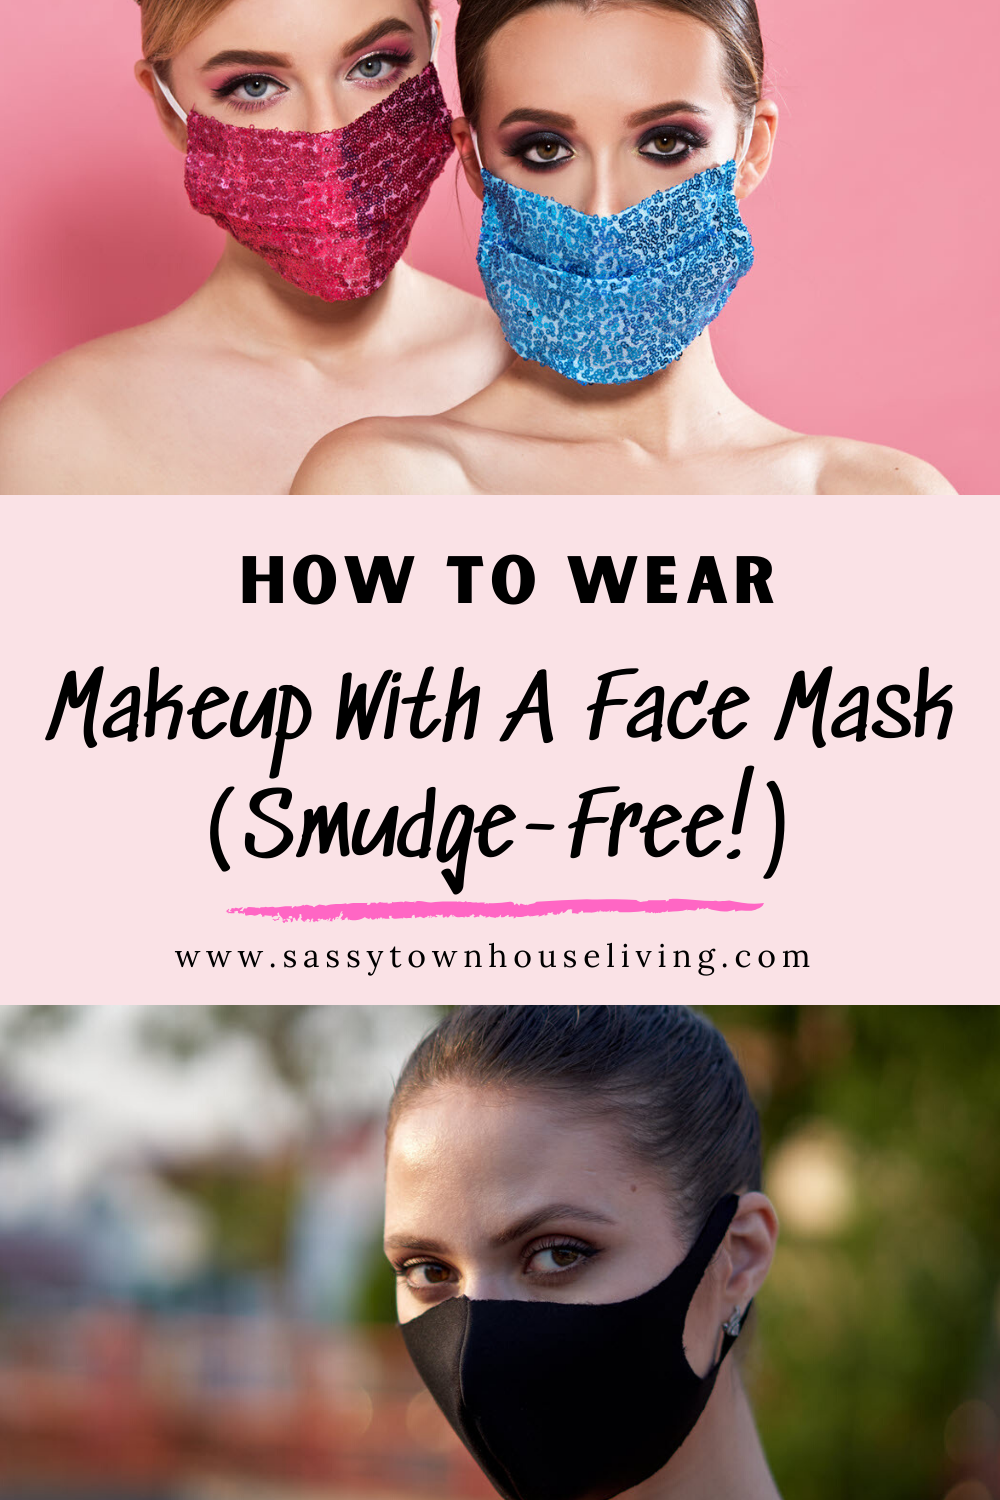 How To Wear Makeup With A Face Mask Smudge Free In 2020 How To Wear Makeup Mask Makeup Leather Face Mask